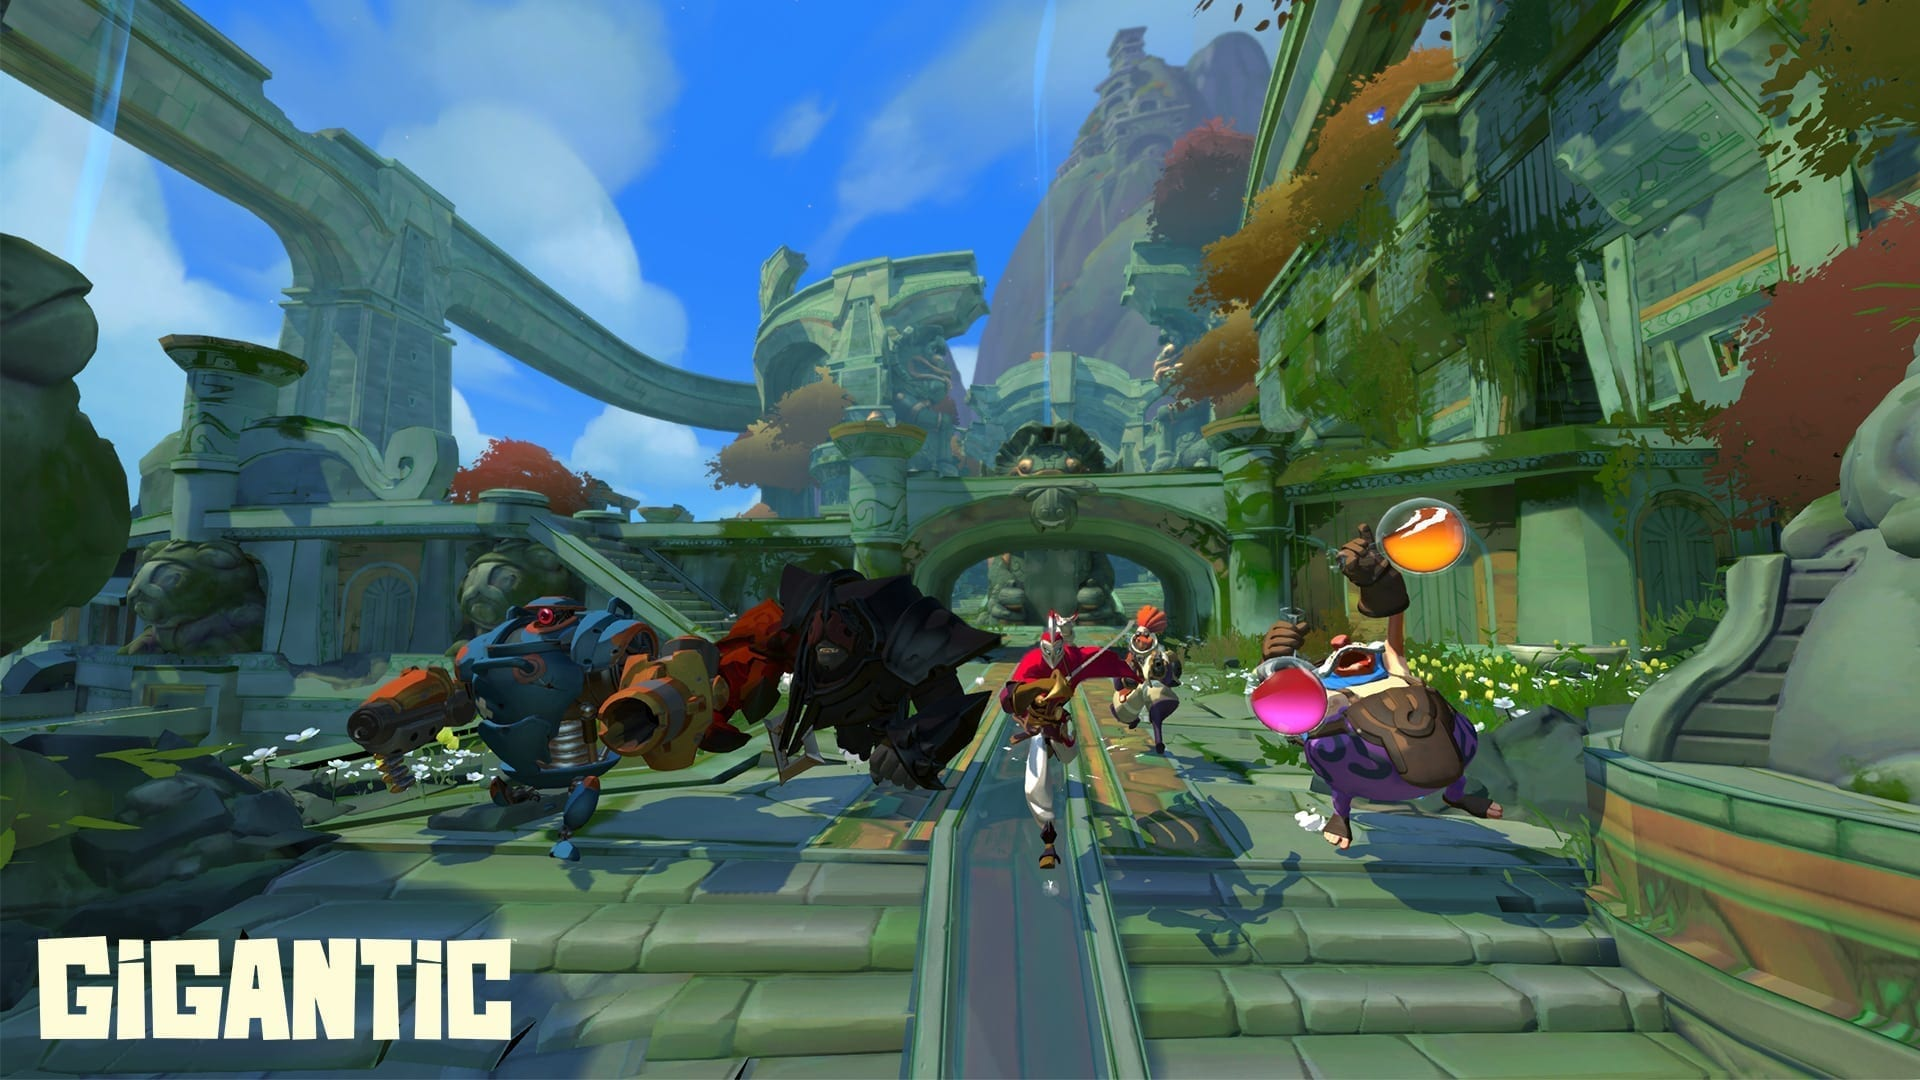 gigantic-closed-beta-screenshot-1